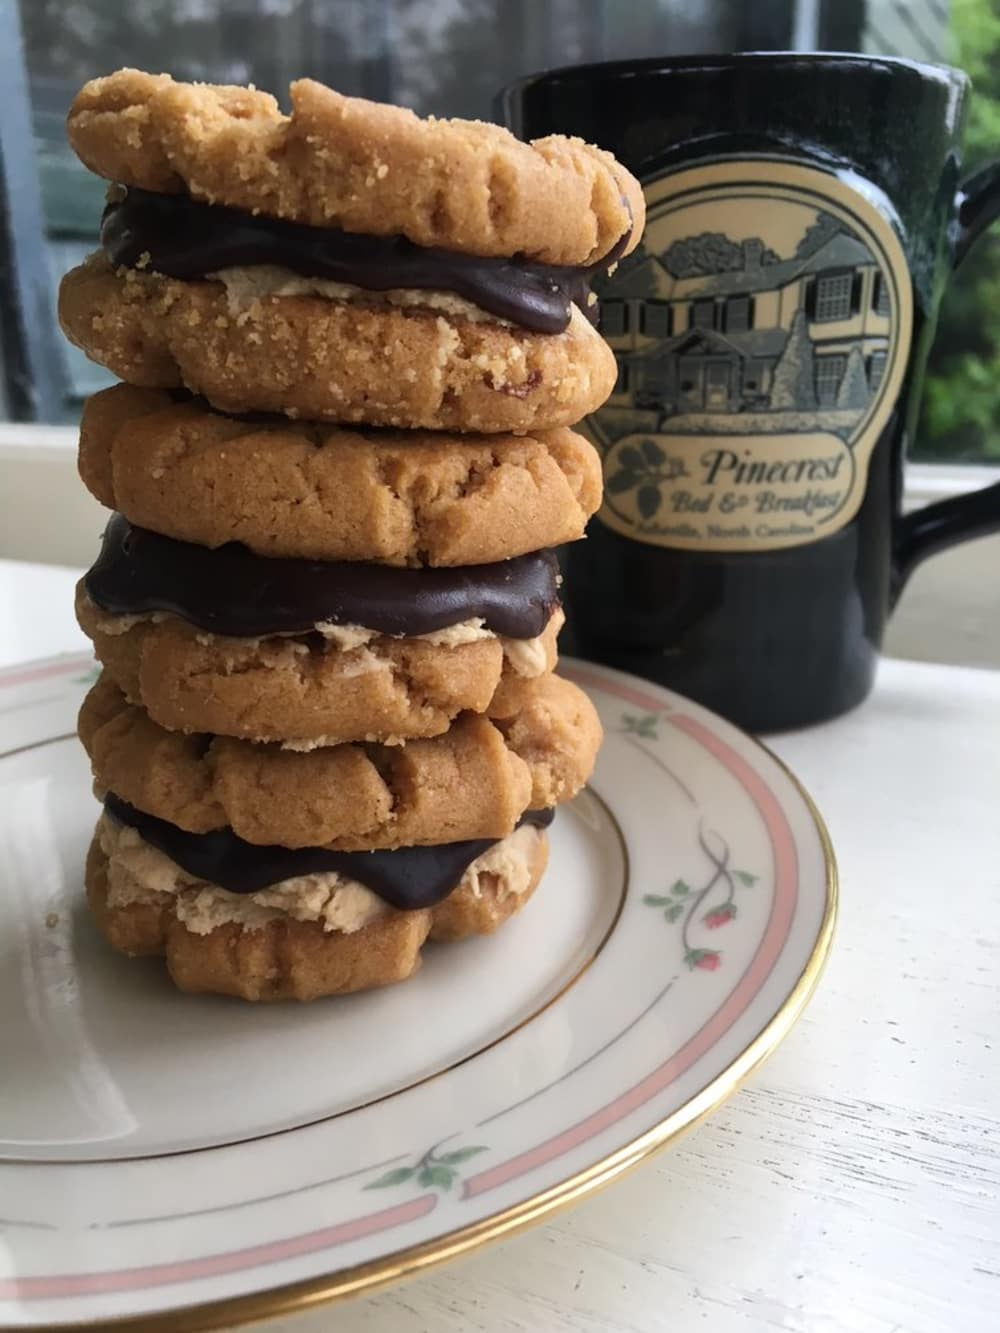 House Favorite Cookie at the Bed & Breakfast